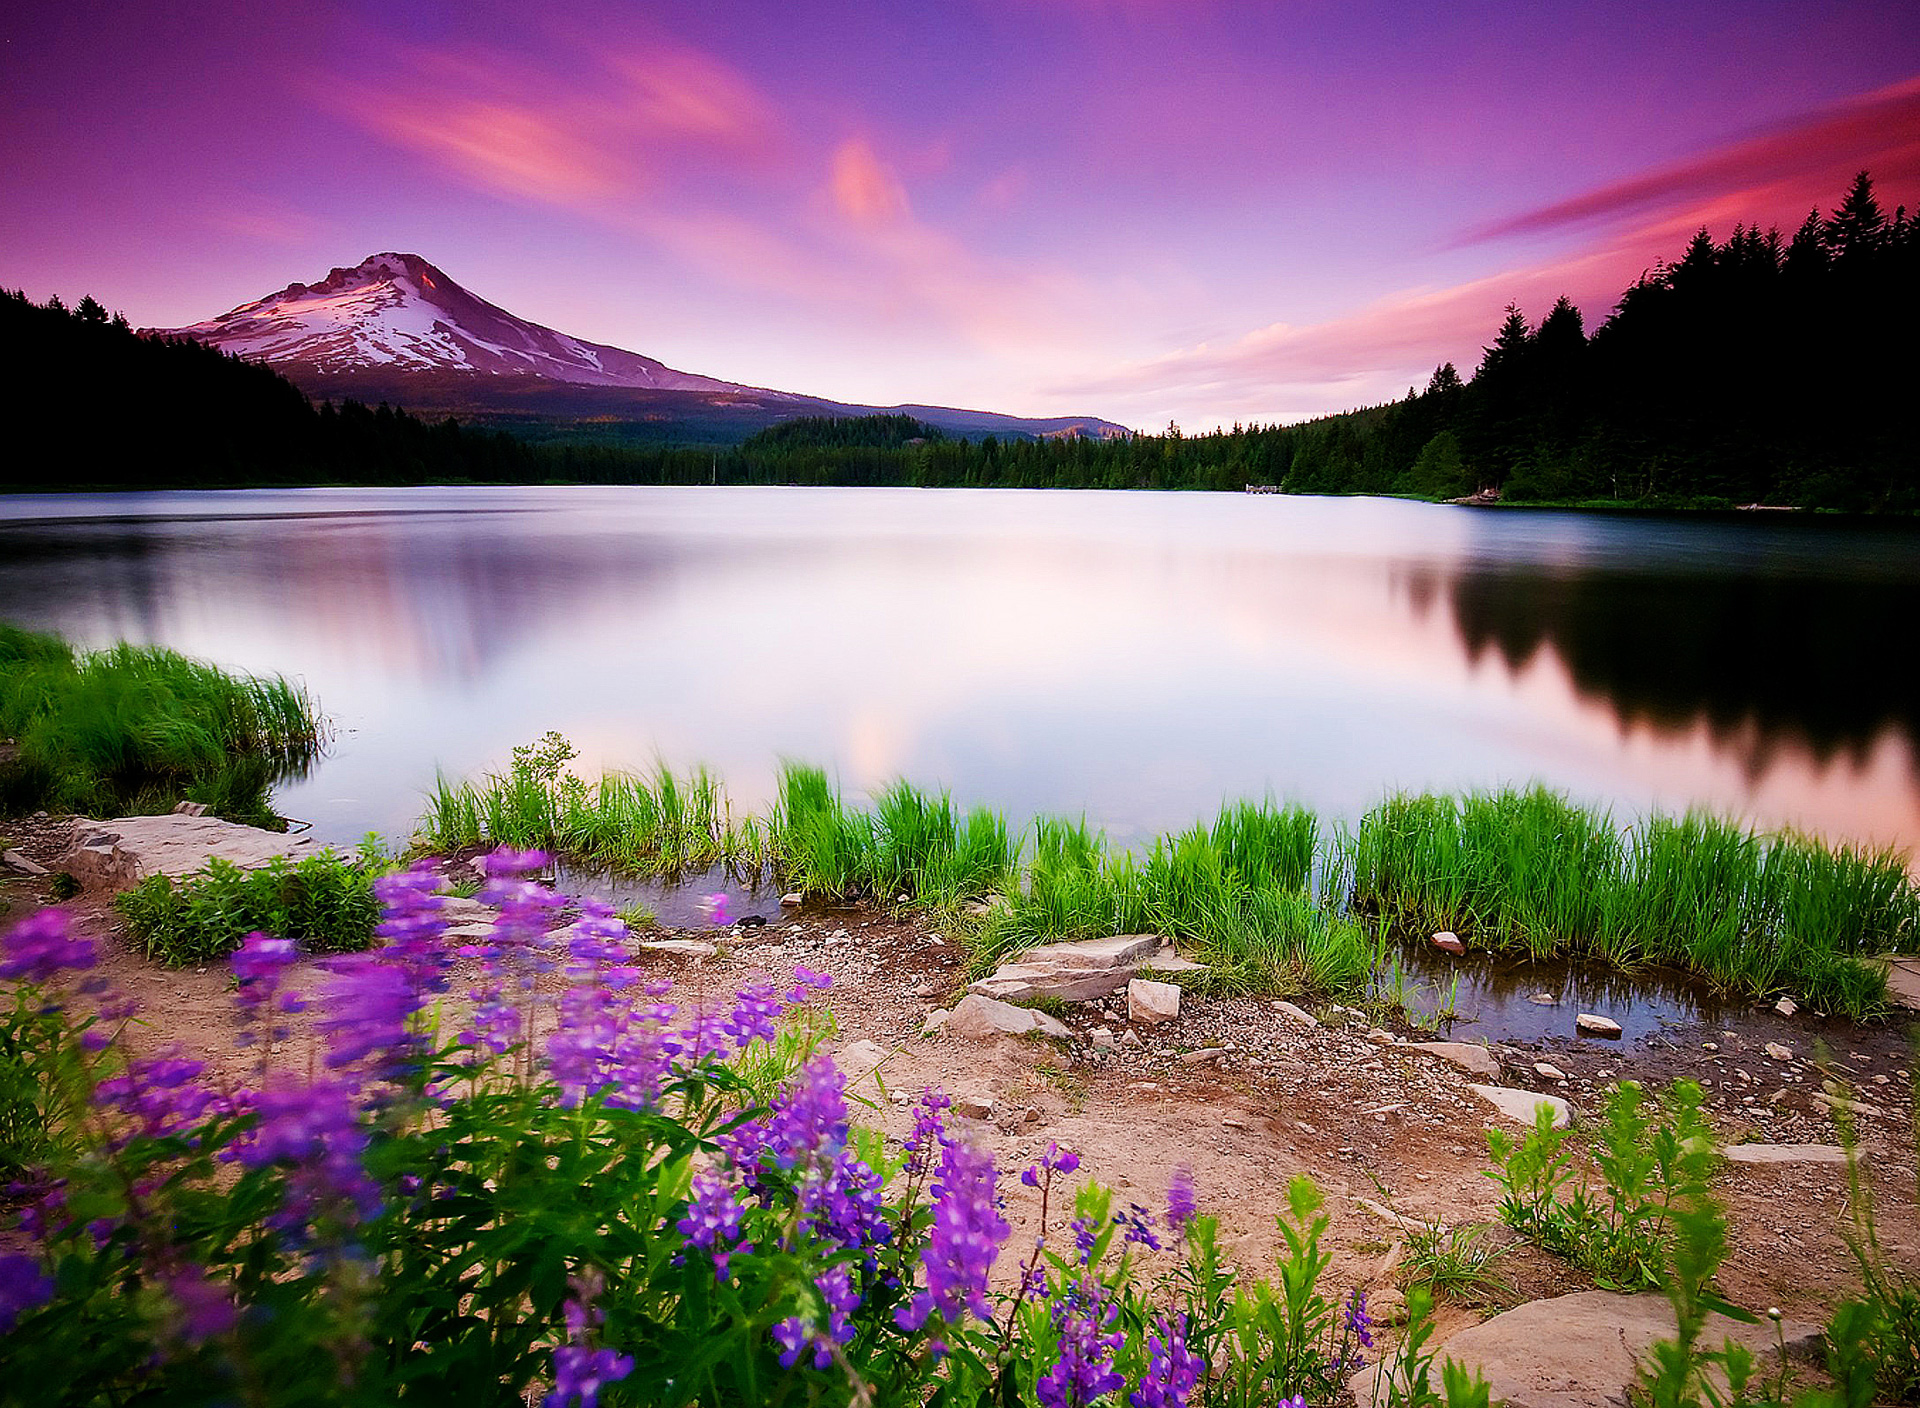 Mountain Lake Scene 1920x1408 wallpaper1920X1408 wallpaper screensaver 1920x1408